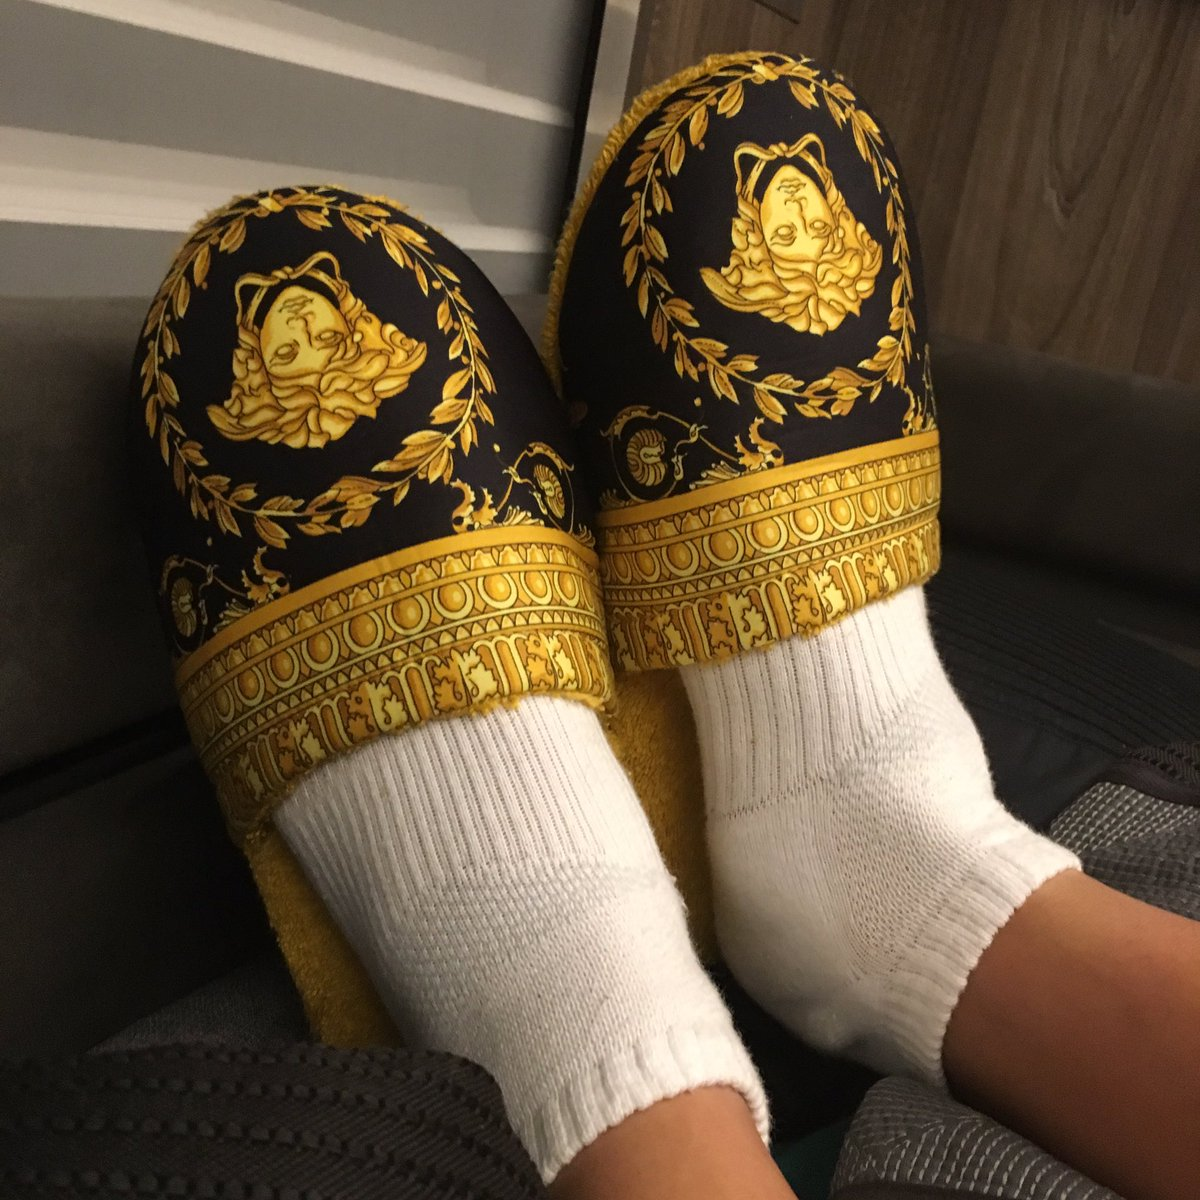 Bruno Mars Flaunts his gold like slipper in new twitter photo